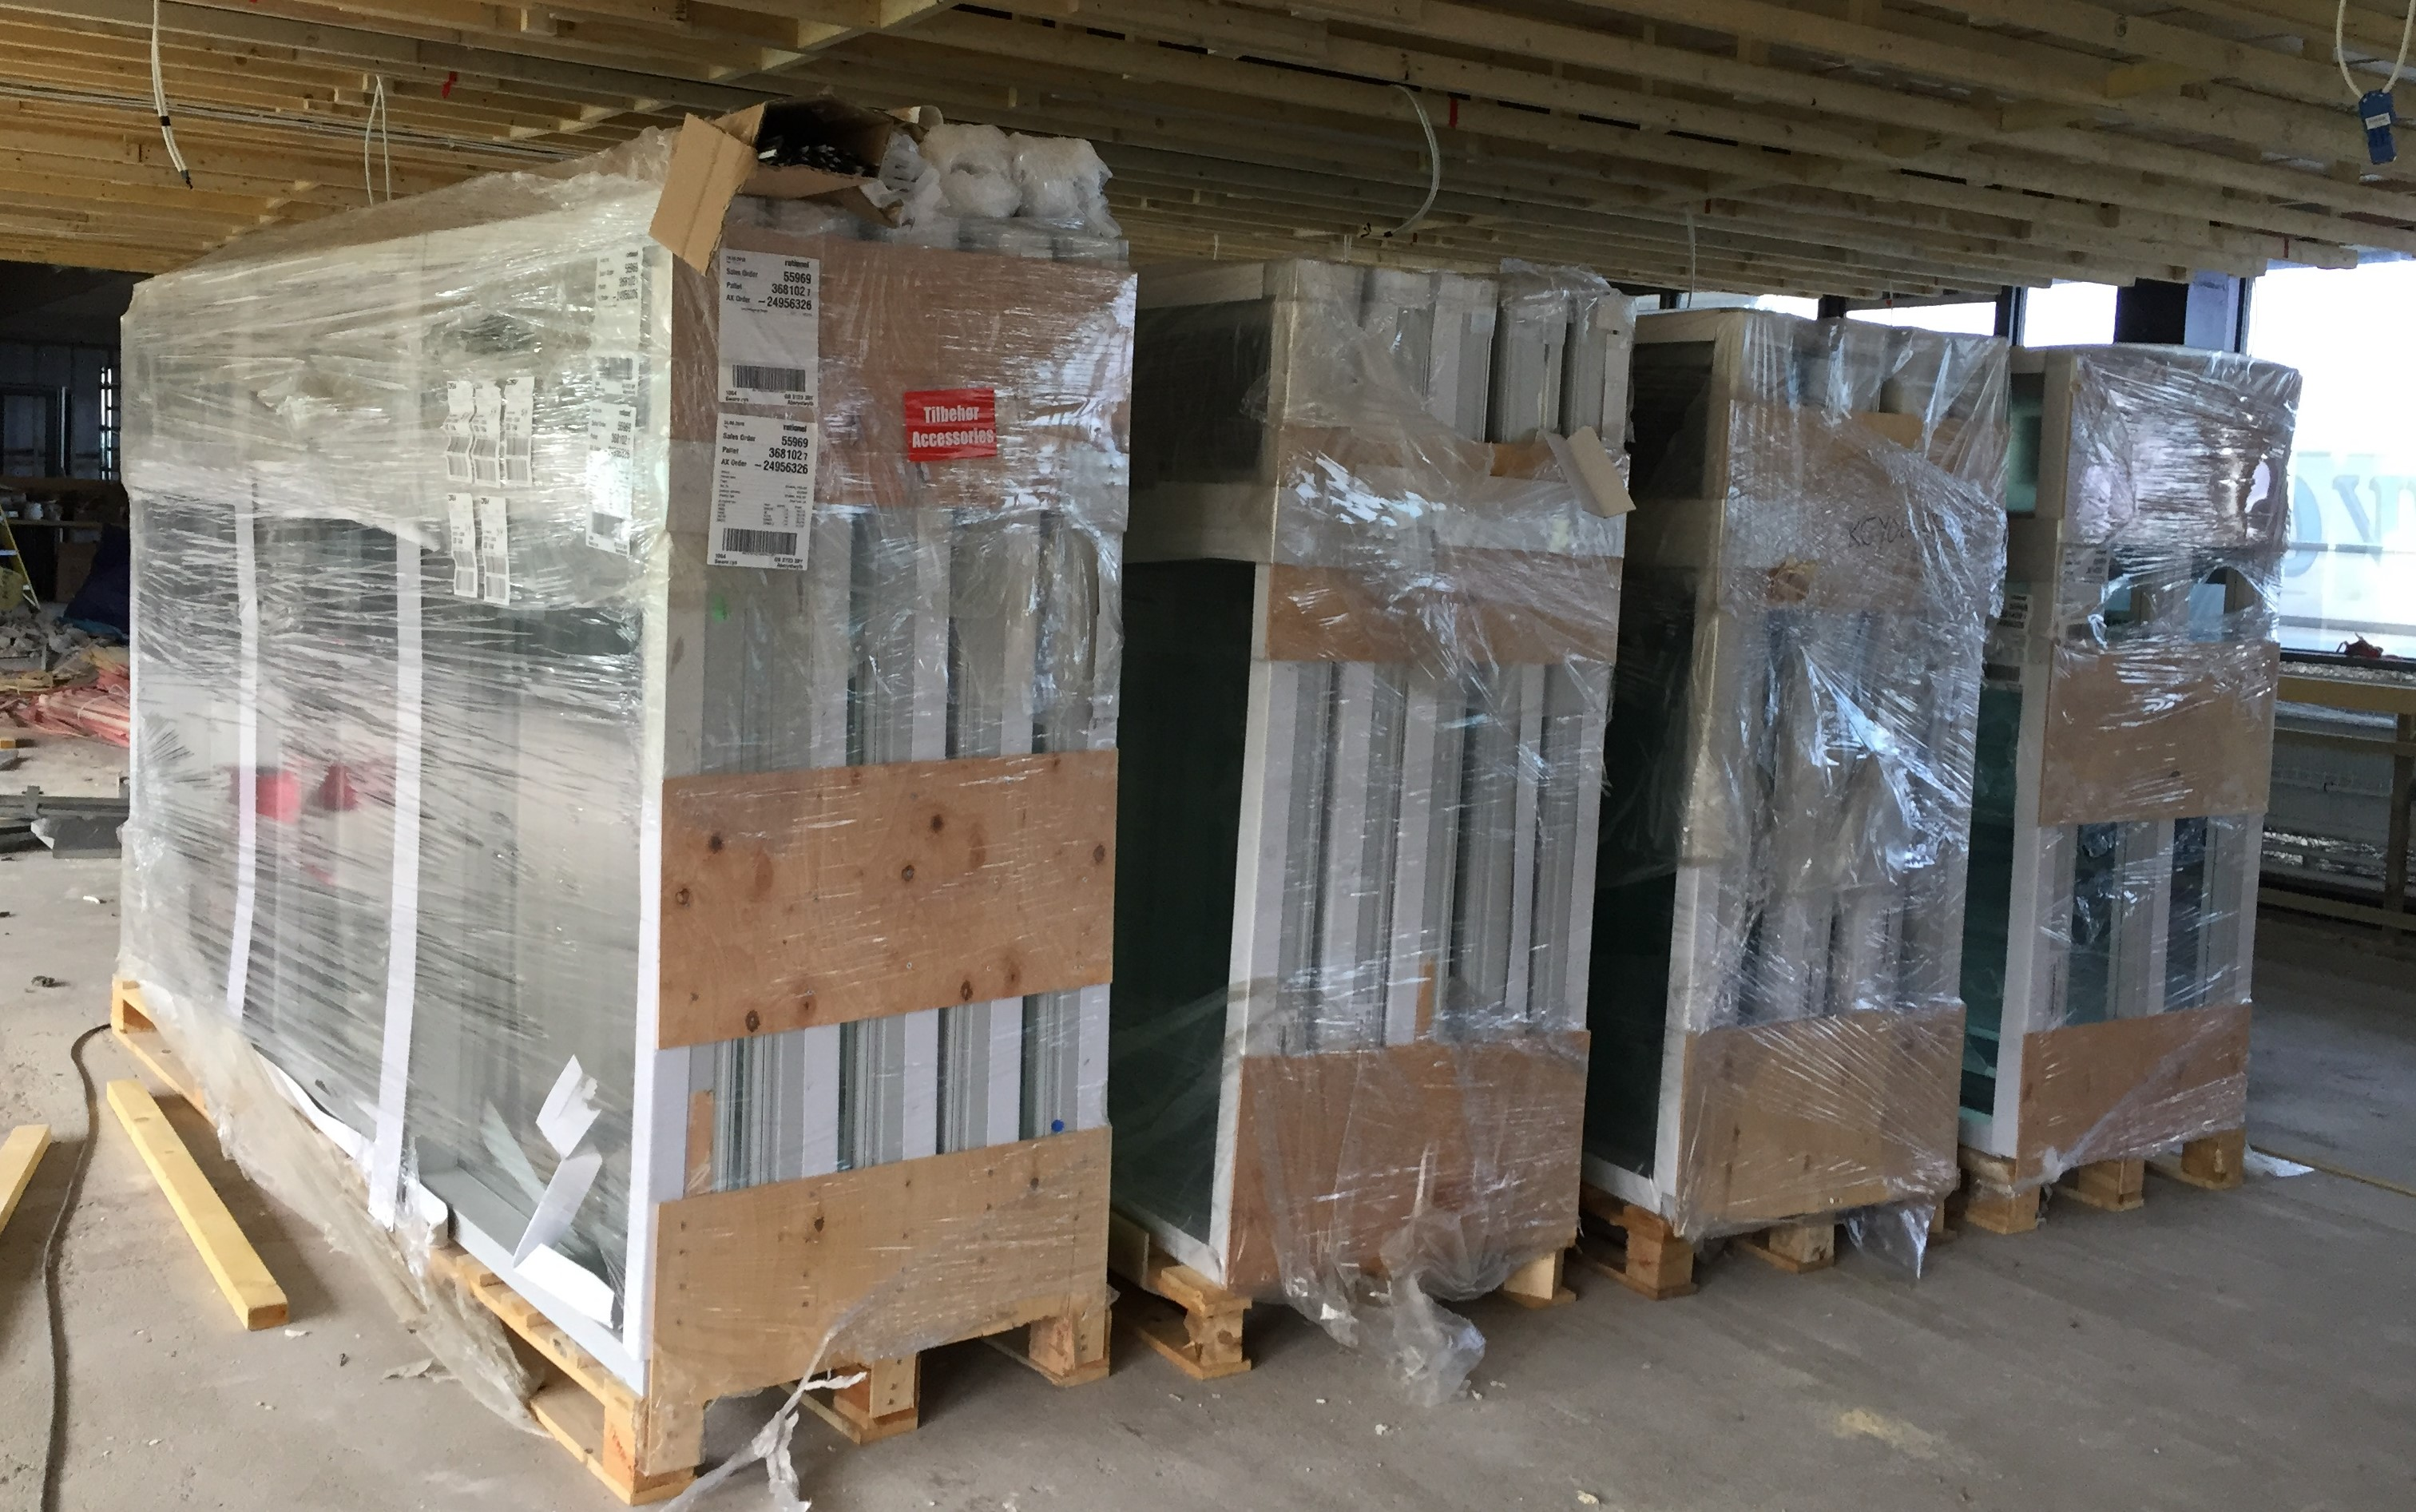 new windows delivered, ready to unpack